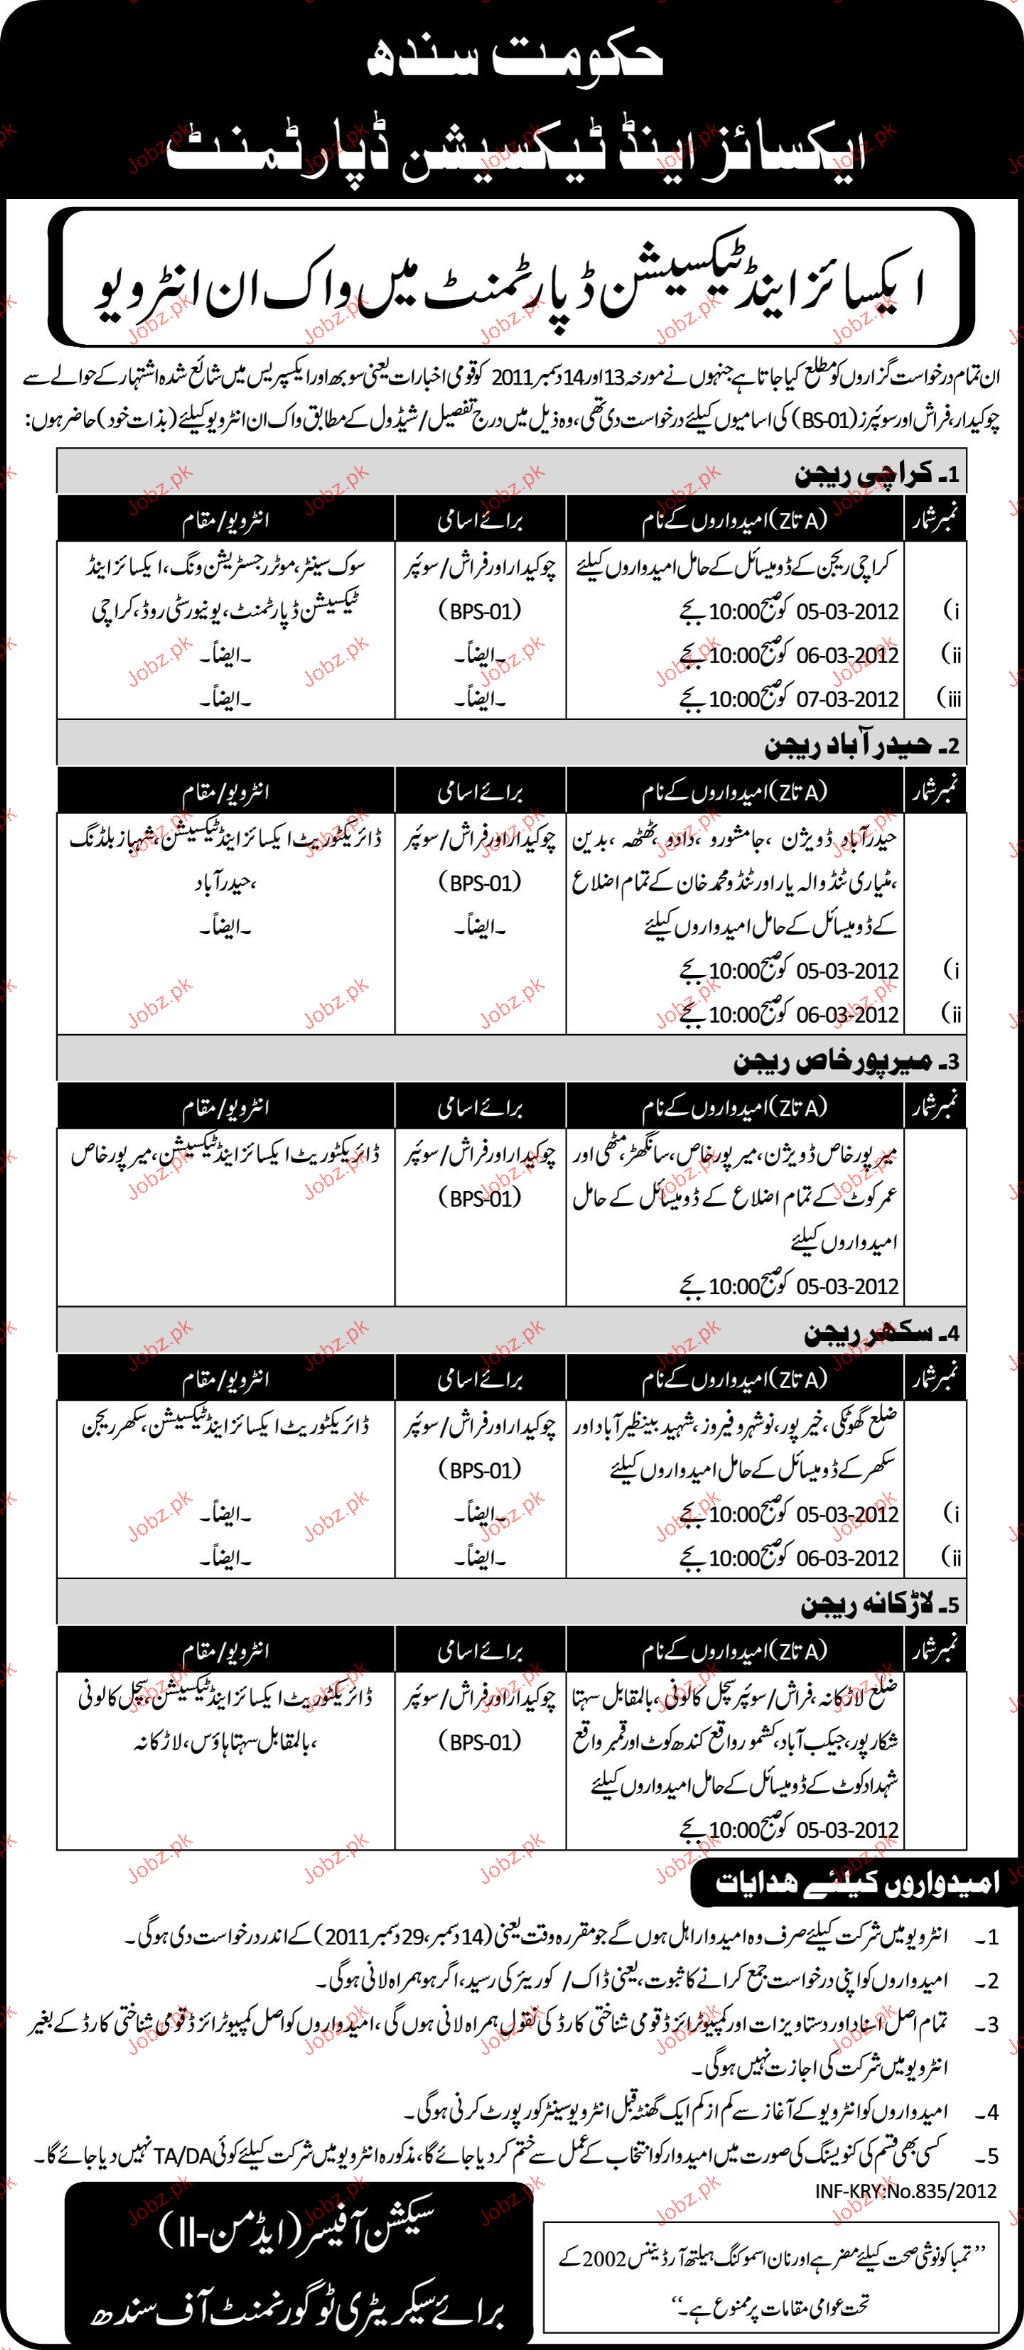 Chawkidar, Farash and Sweepers Job Opportunity